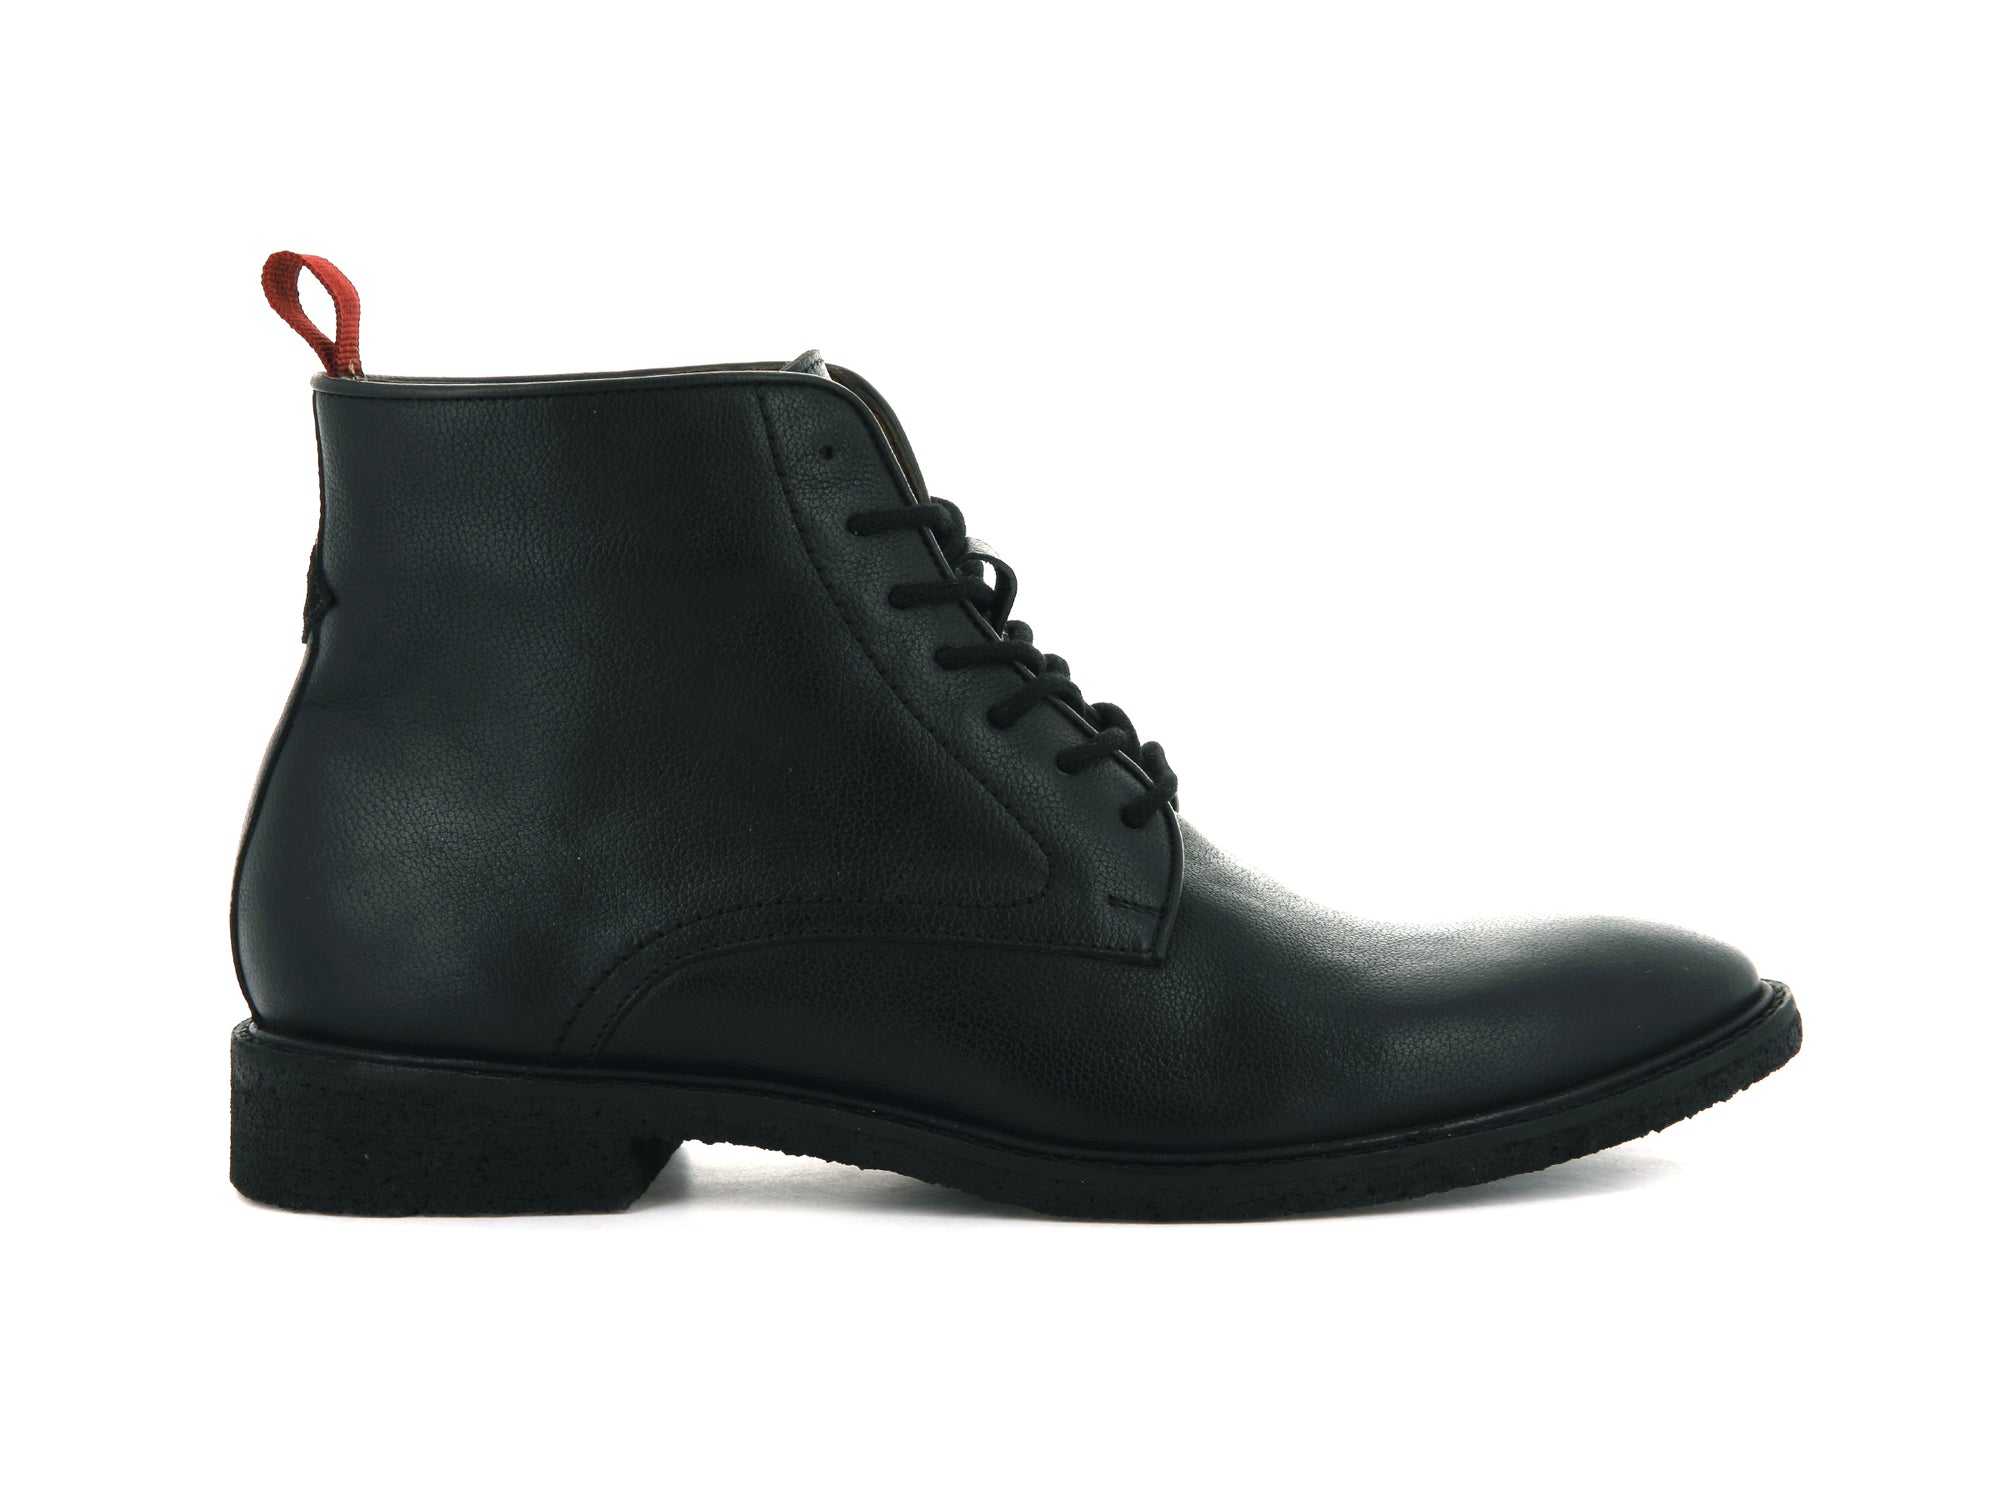 76283_315 | Bottines homme ANNIBAL DDM | BLACK